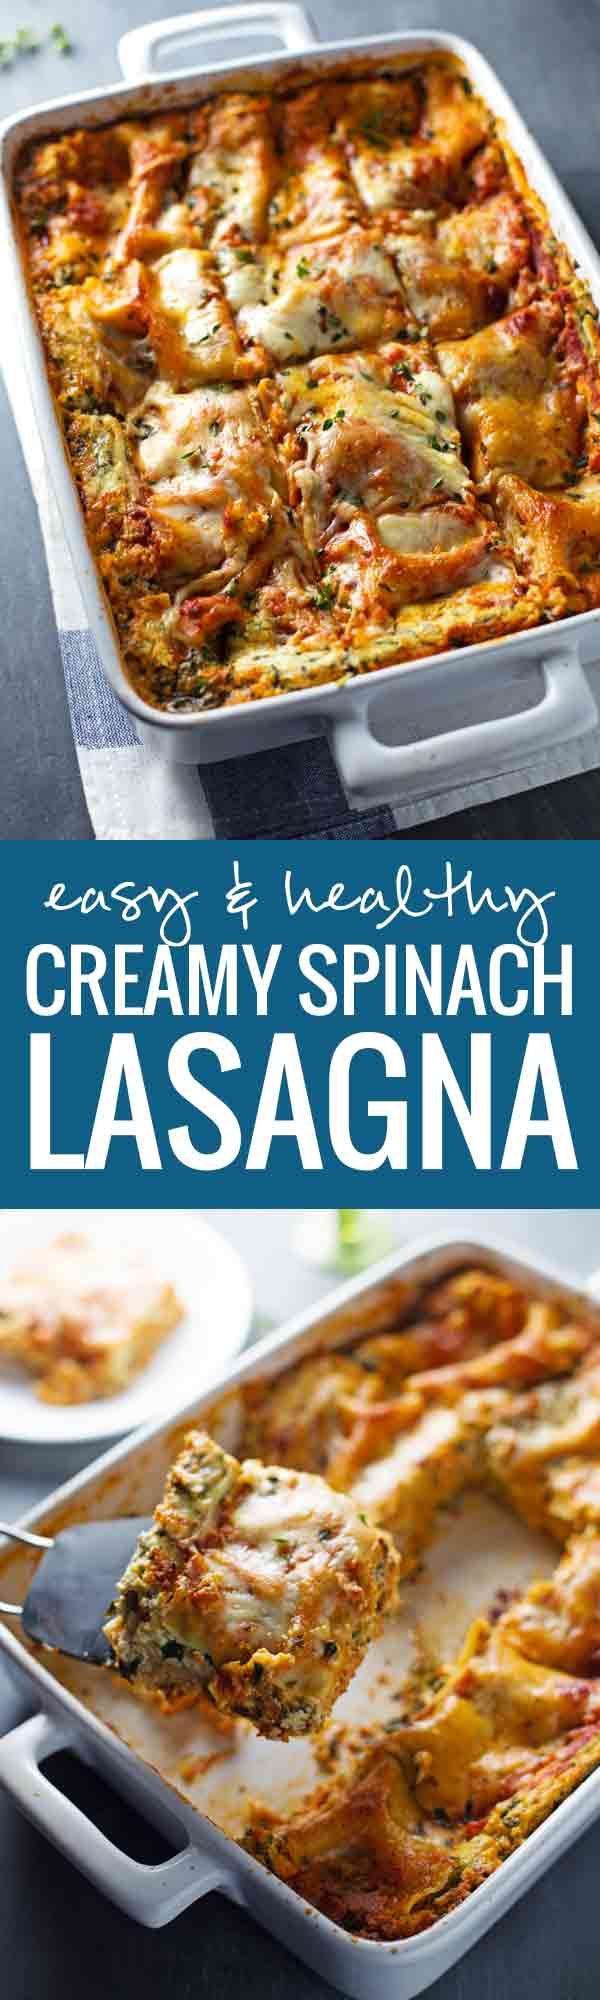 Skinny Spinach Lasagna - thick layers of sauce, noodles, ricotta, spinach, and Mozzarella - 250 calories. | pinchofyum.com